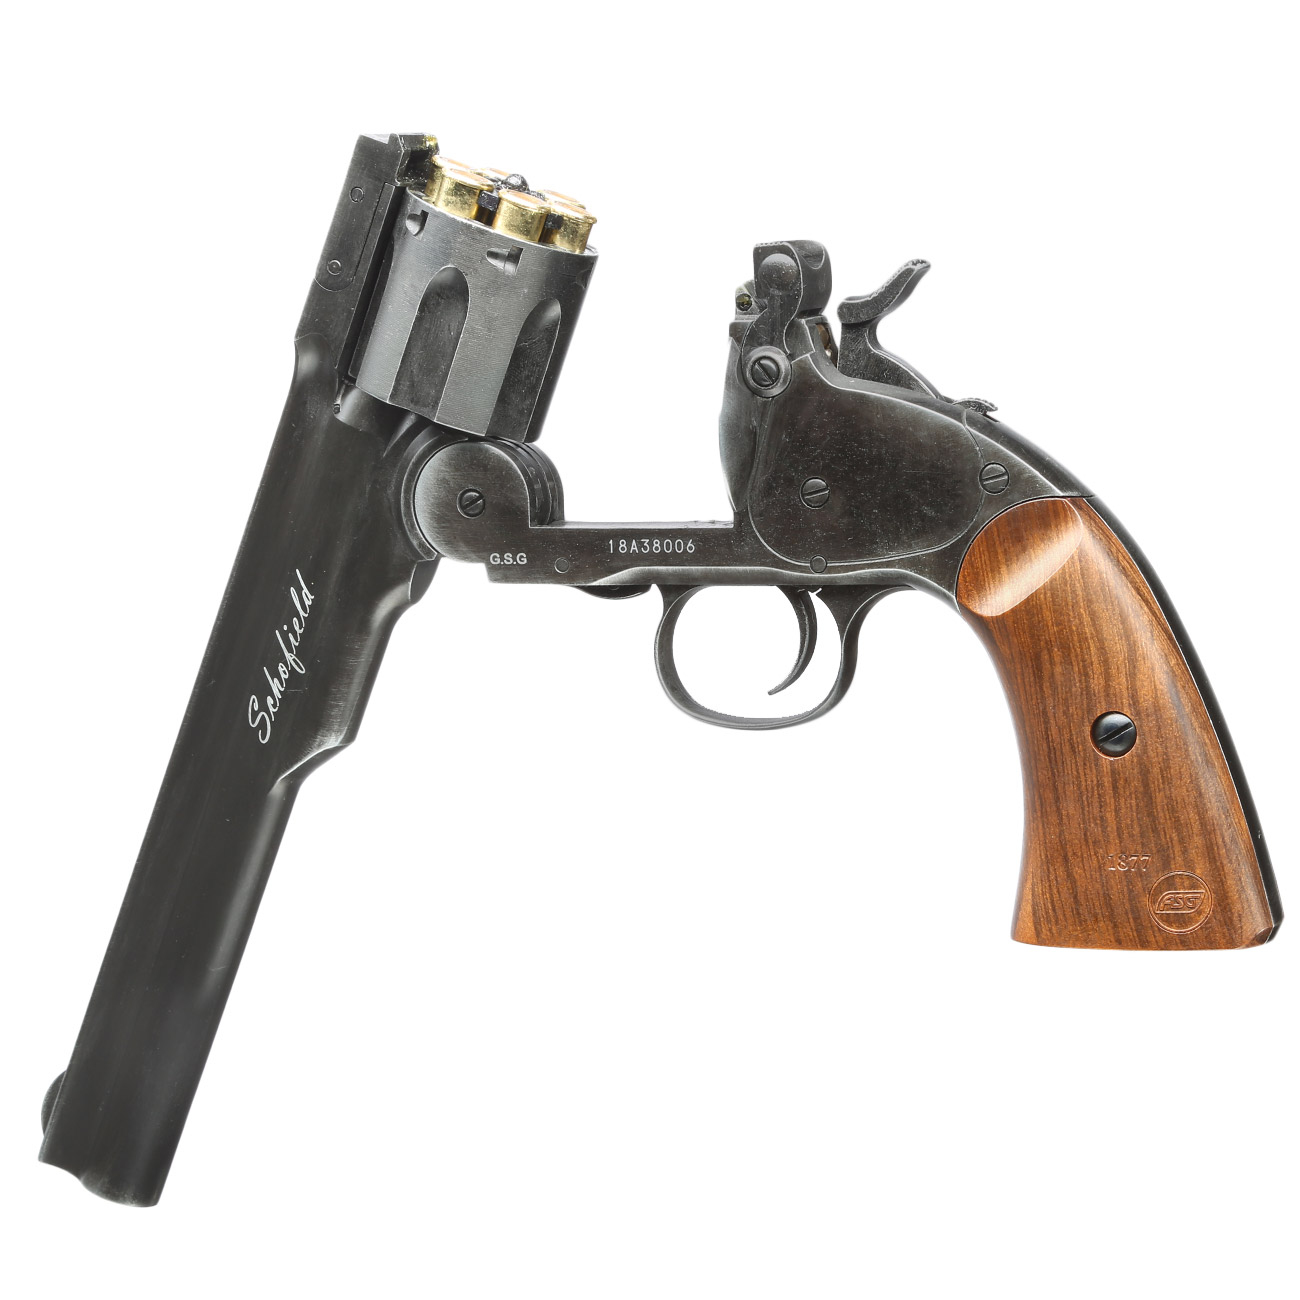 ASG Schofield 1877 6 Zoll CO2-Revolver Kal. 4,5 mm Diabolo + Stahl-BB Vollmetall aging black 5